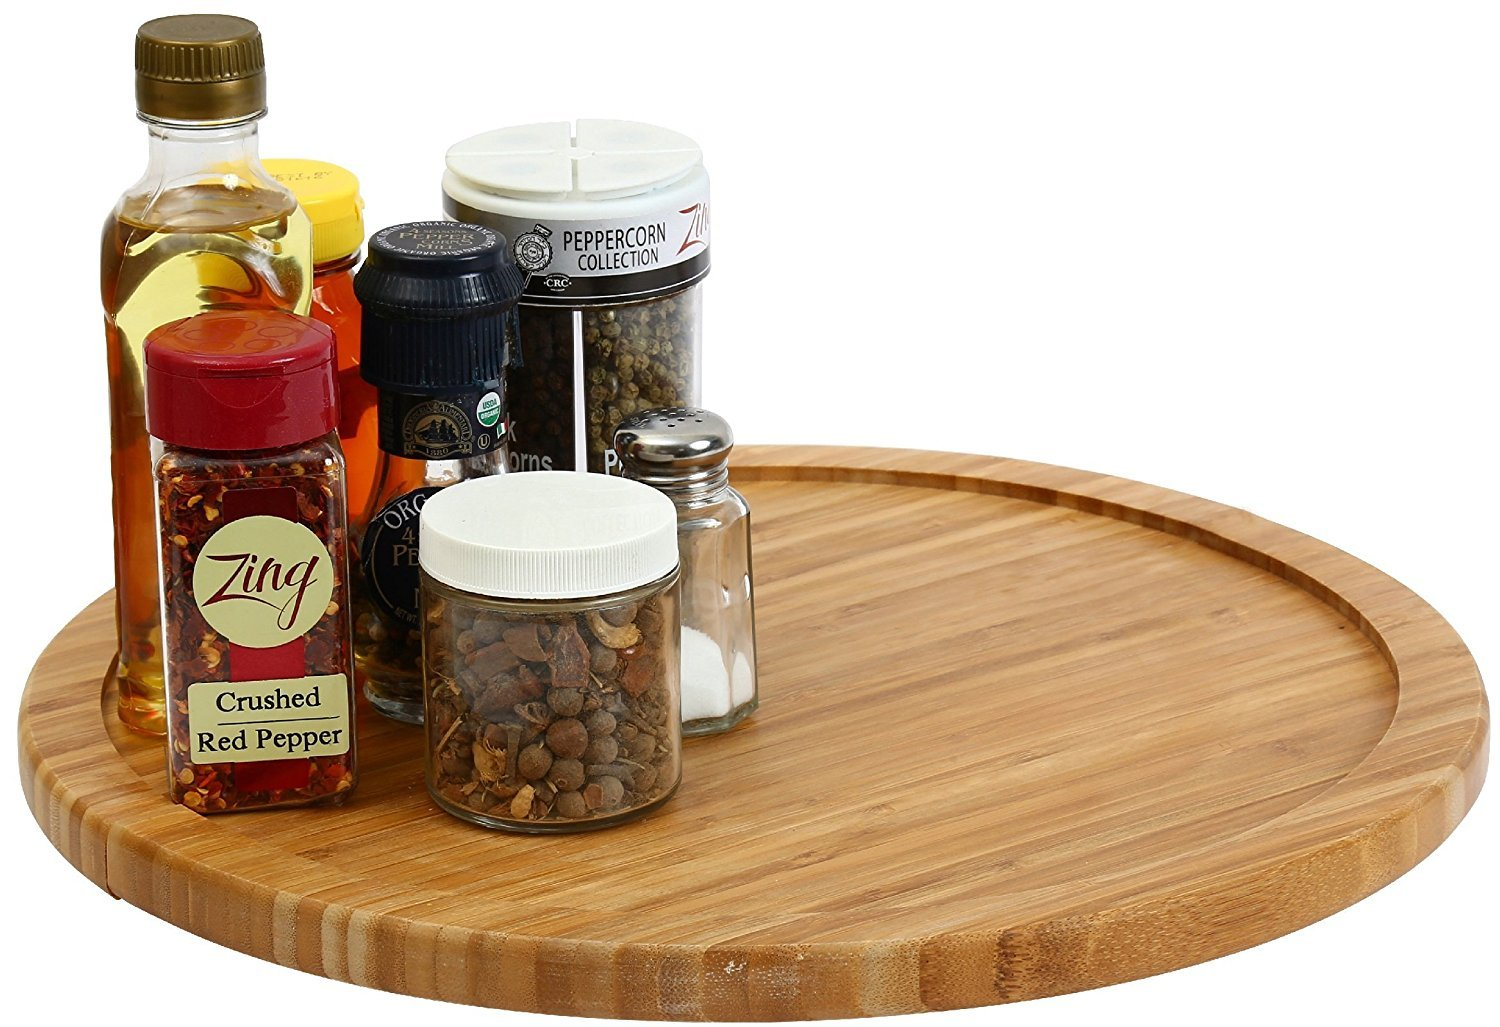 YBM HOME Bamboo Wooden Lazy Susan Turntable 14 Inch Diameter 356 by YBM HOME